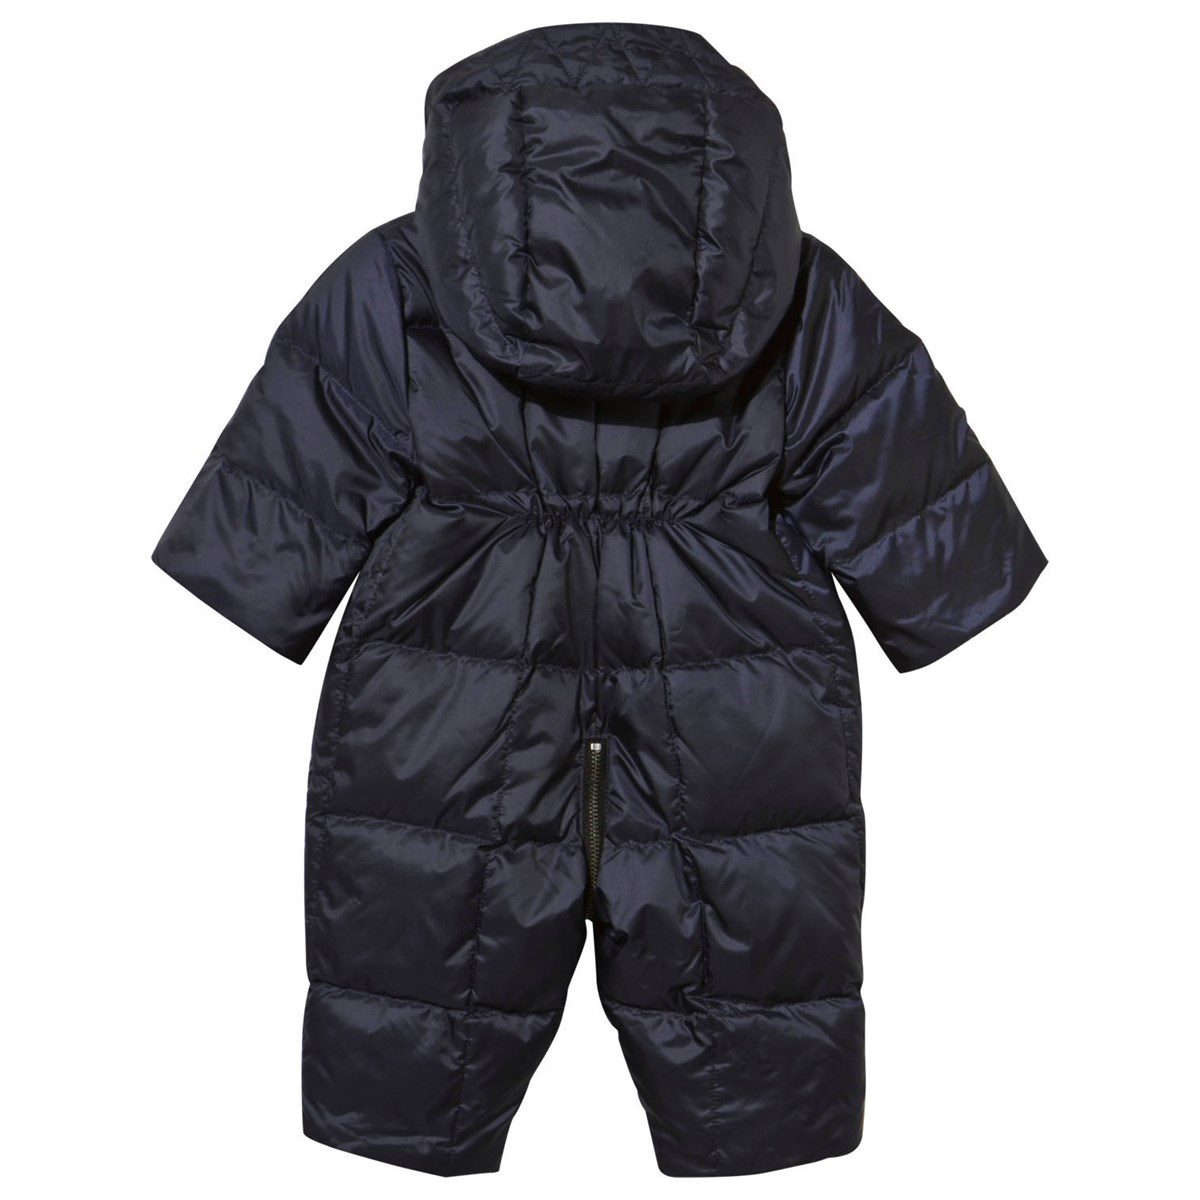 9a25b07c0 Burberry Navy Snowsuit with Mittens